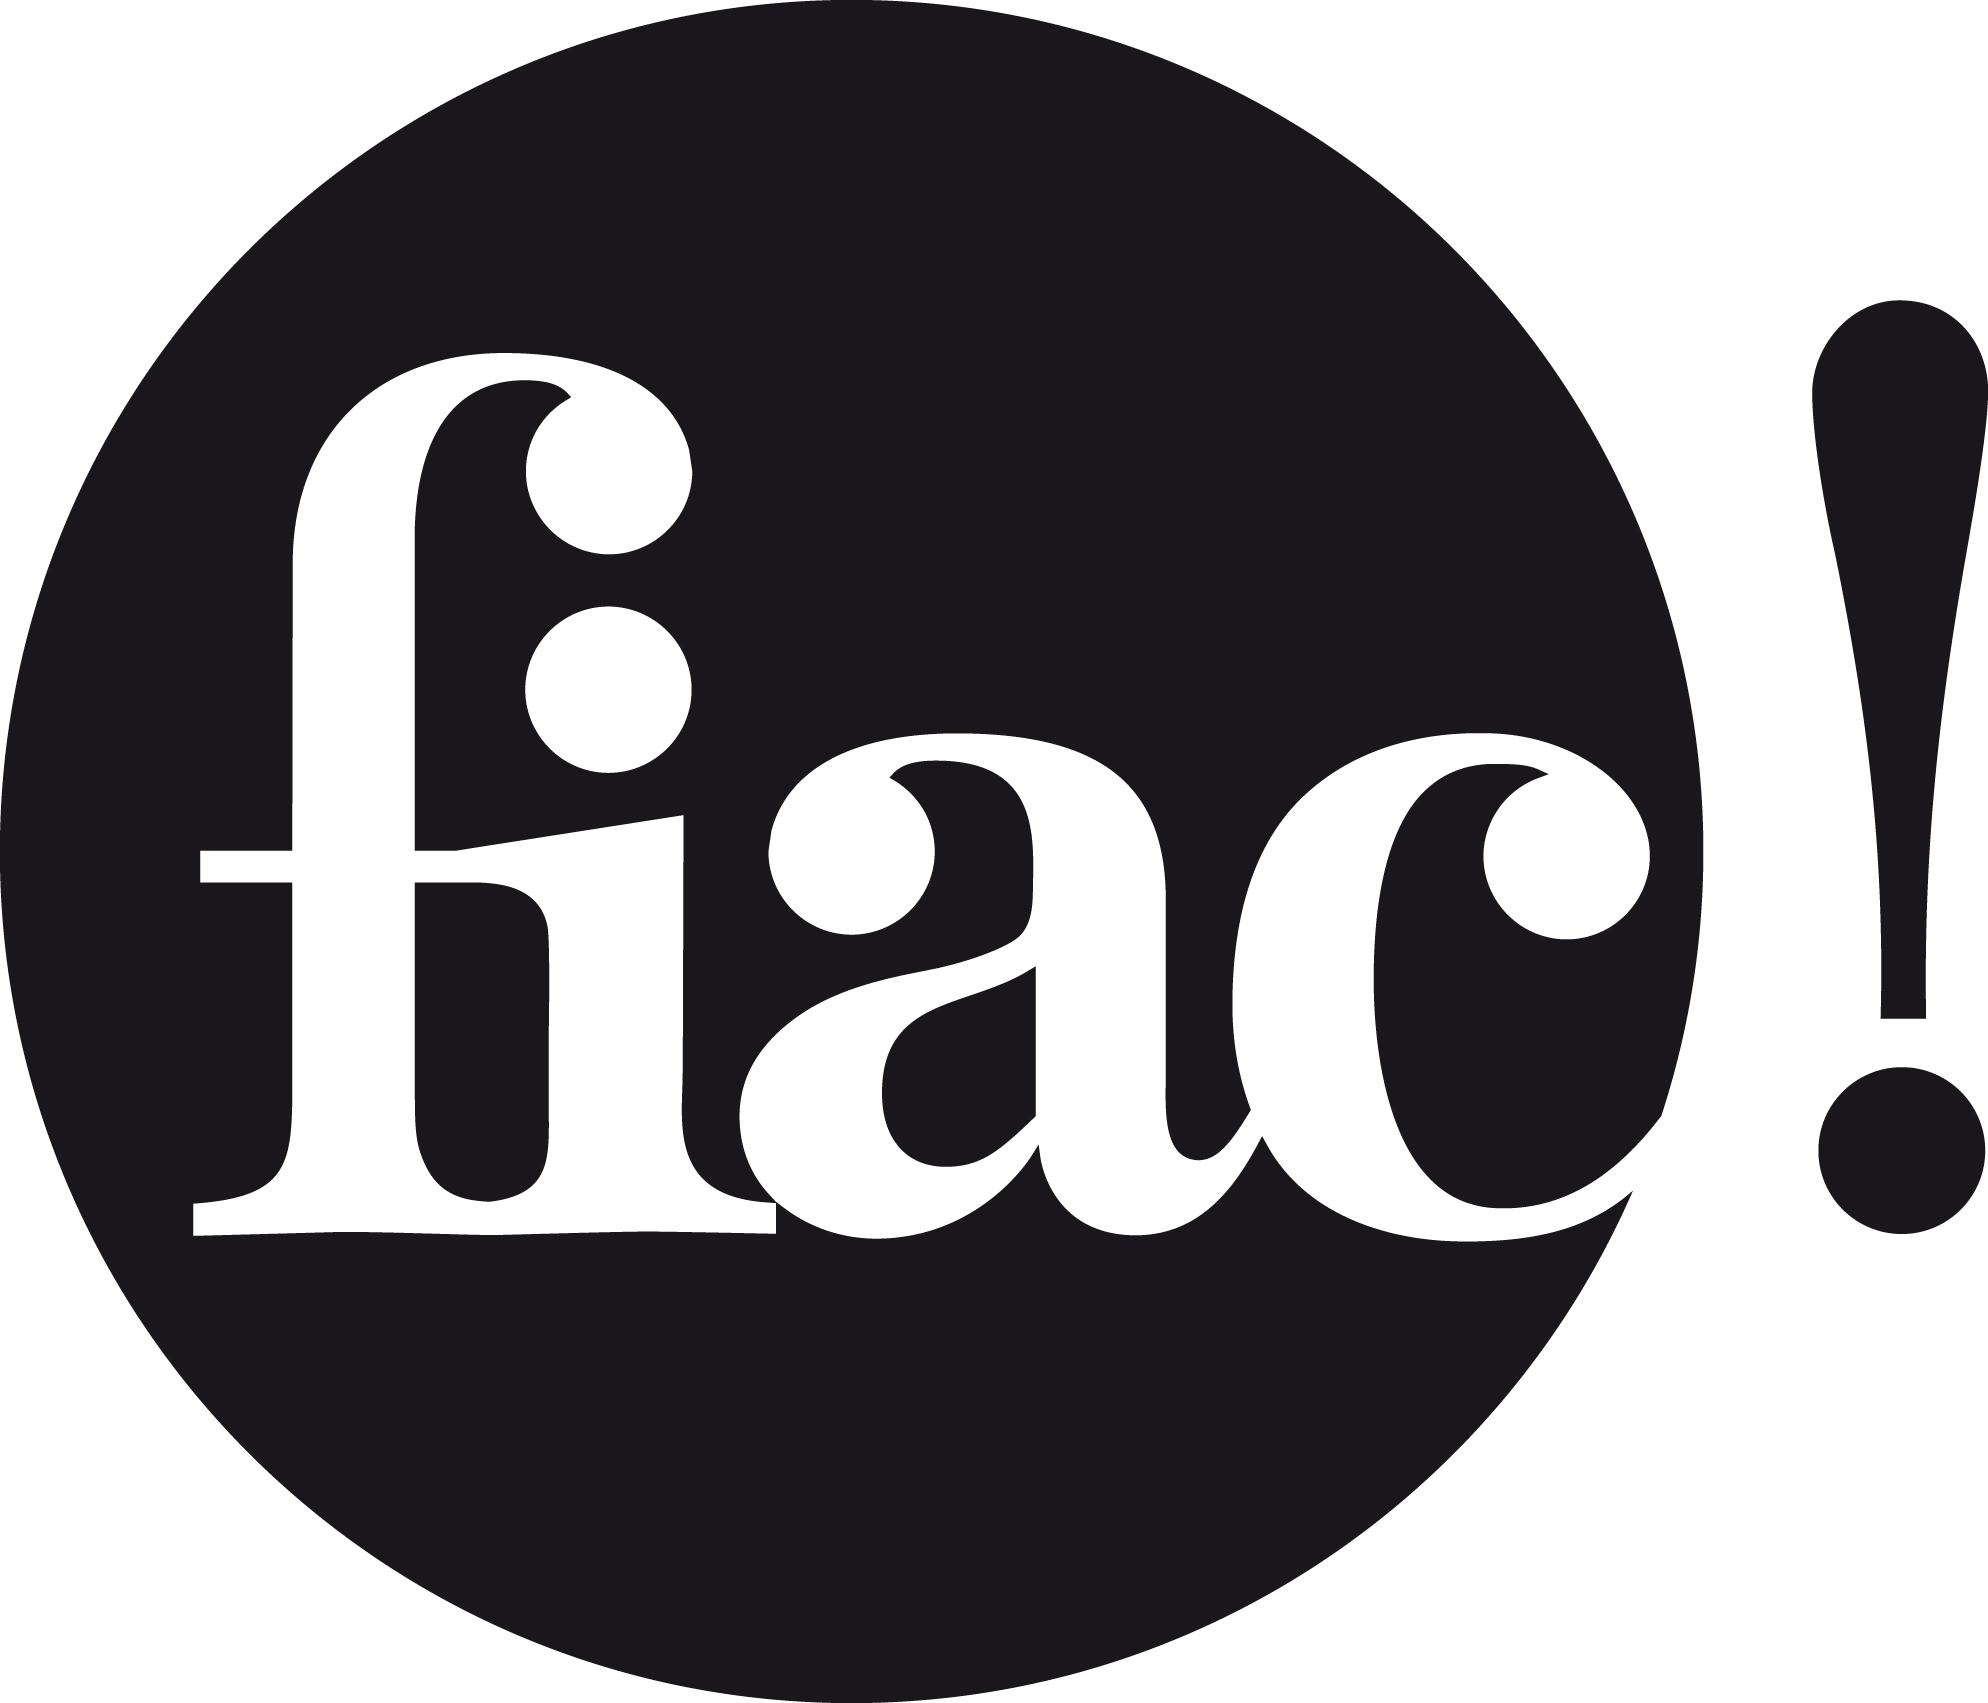 FIAC_EXCLAMATION.jpg